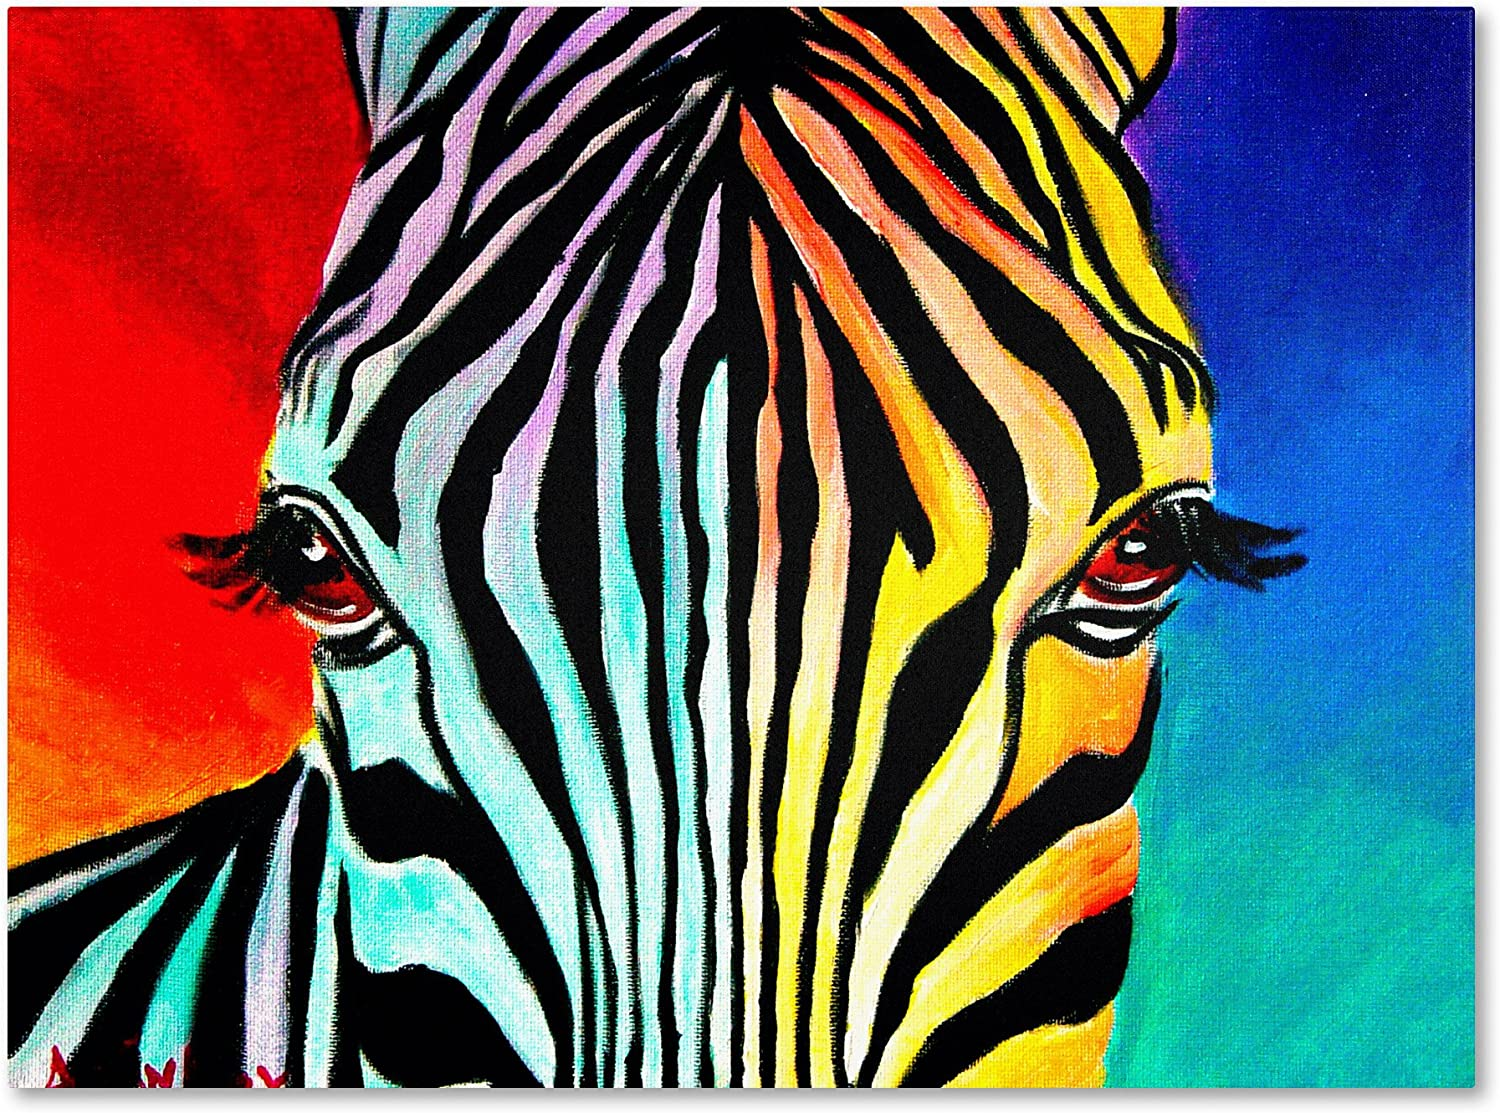 Zebra Artwork Super beauty product restock quality top by DawgArt 18 Wall Canvas 24-Inch Art Manufacturer OFFicial shop